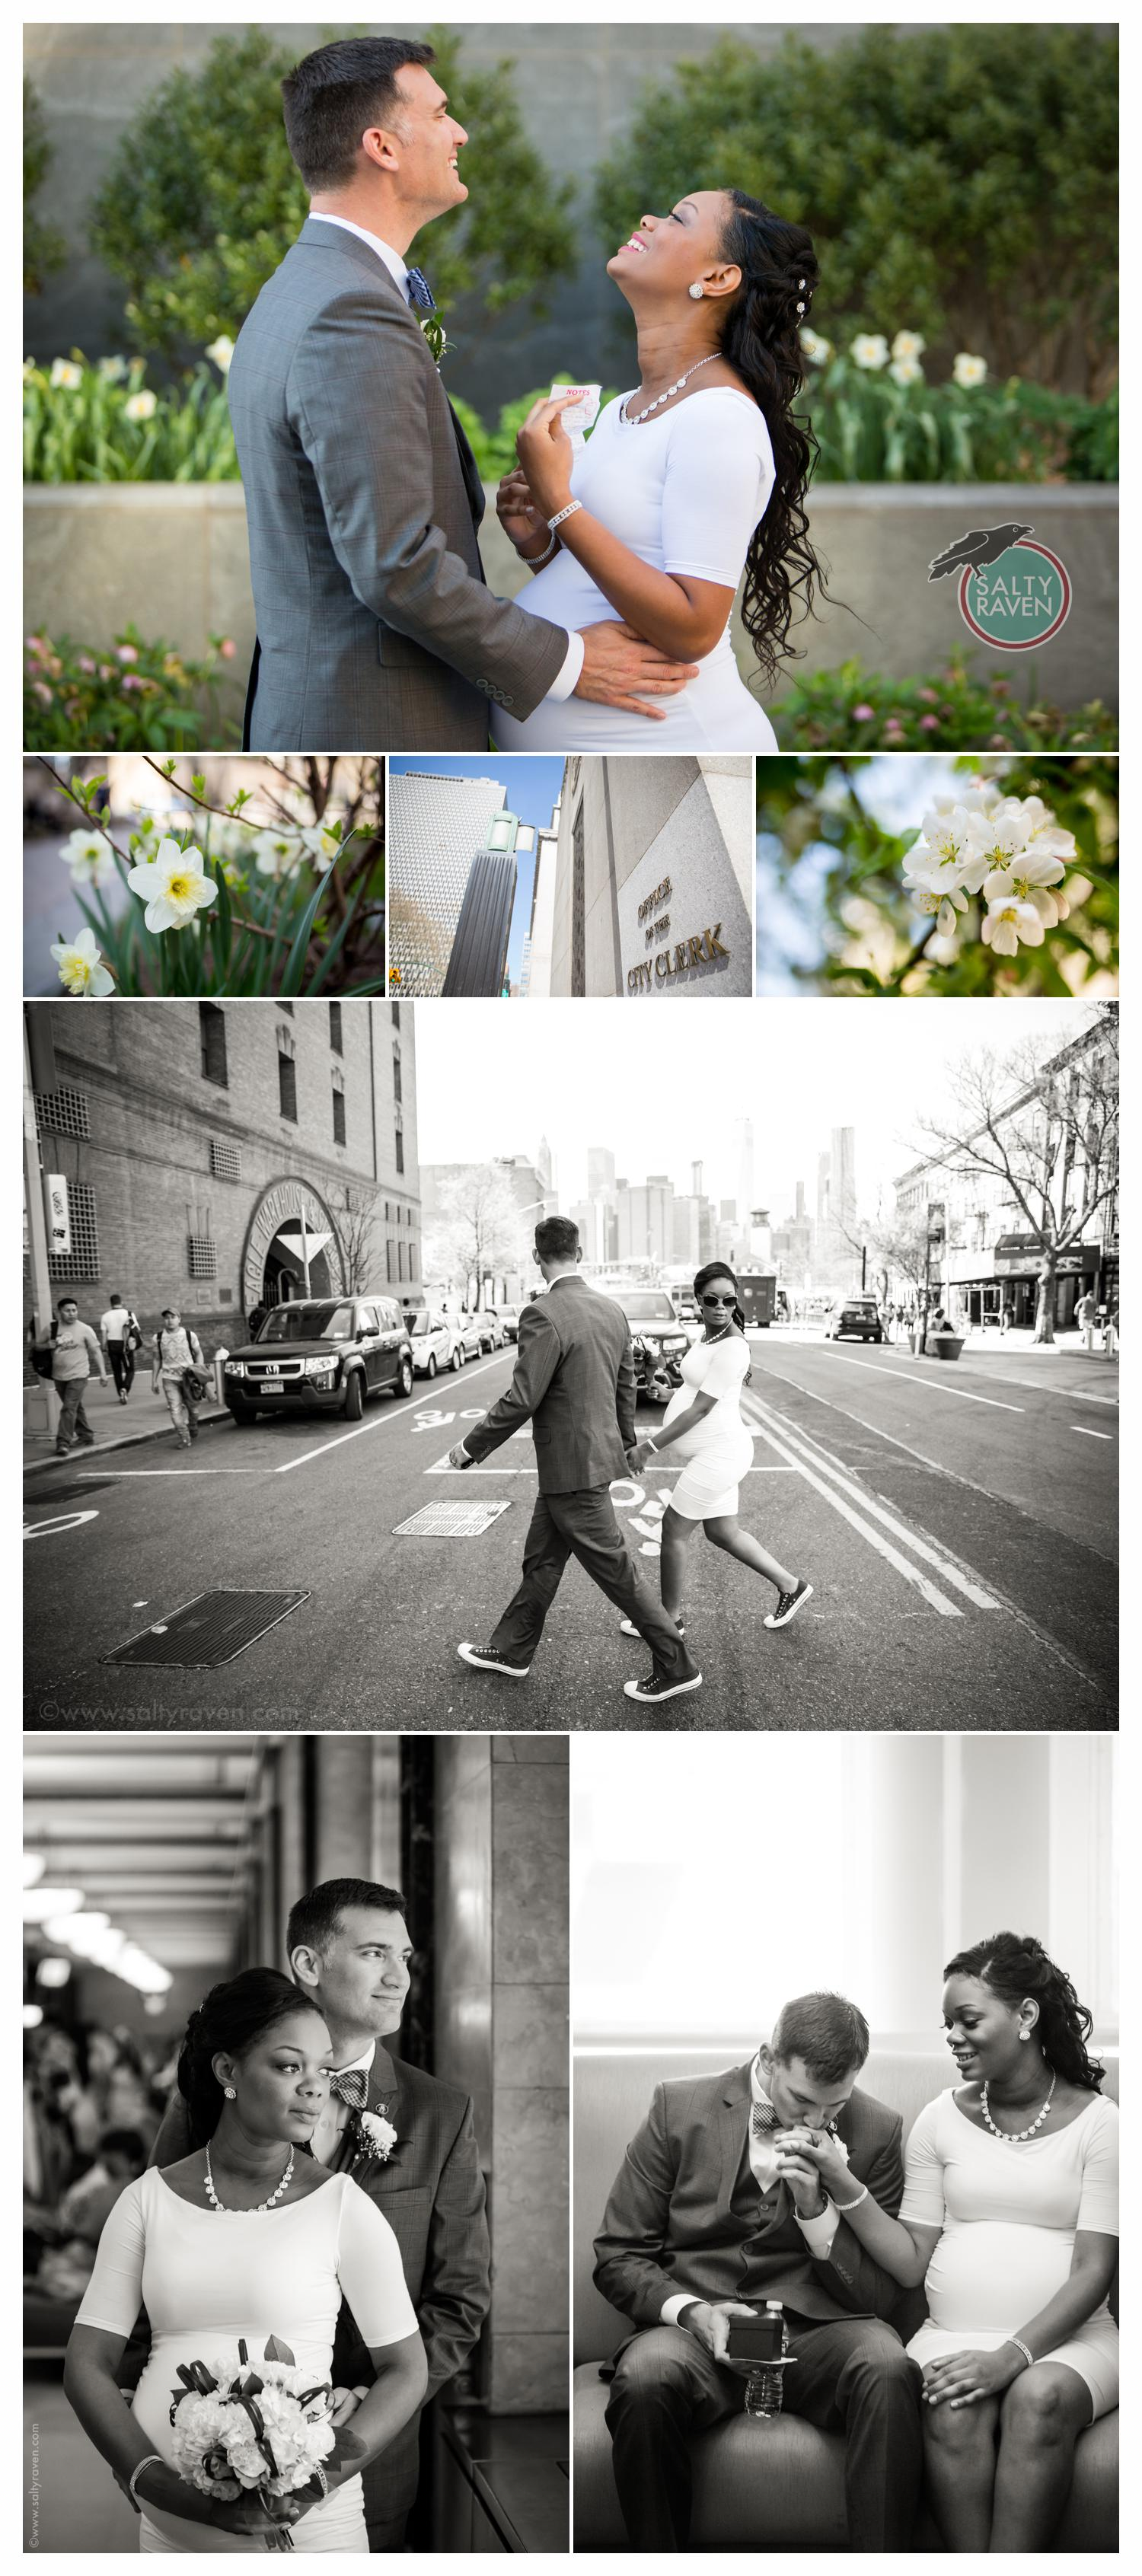 New York City Hall Wedding Photographer 1